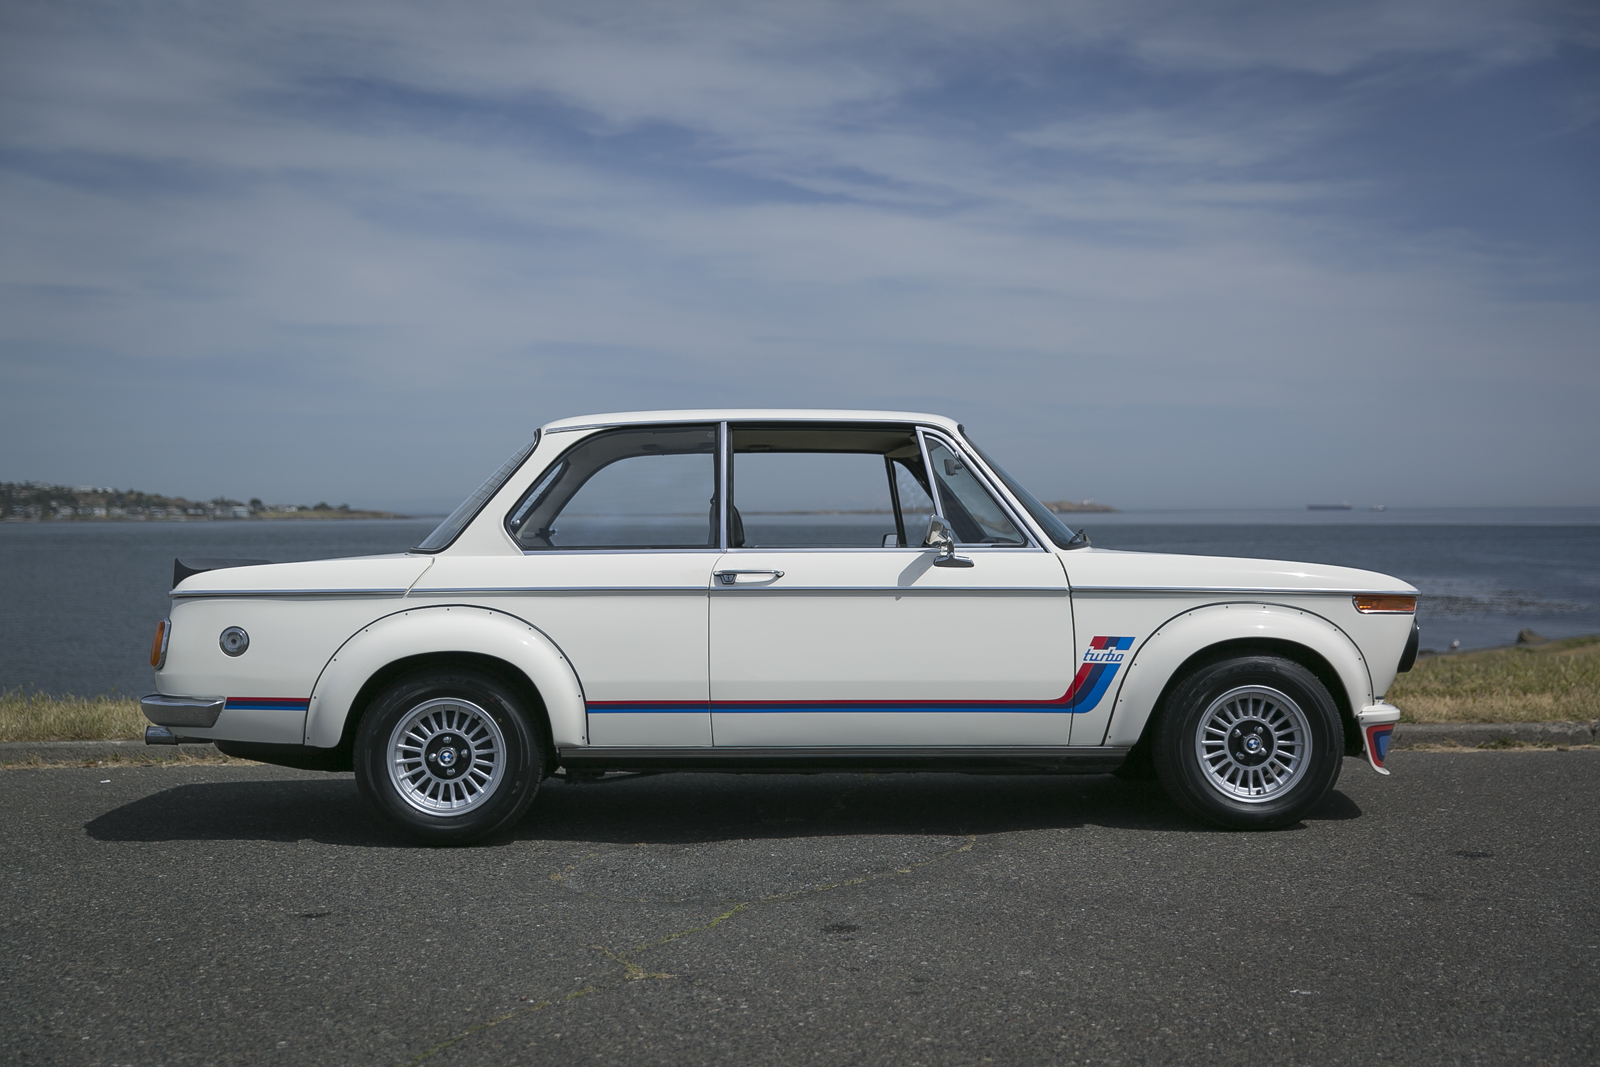 BMW 2002 Tii For Sale >> 1974 BMW 2002 Turbo - Silver Arrow Cars Ltd.